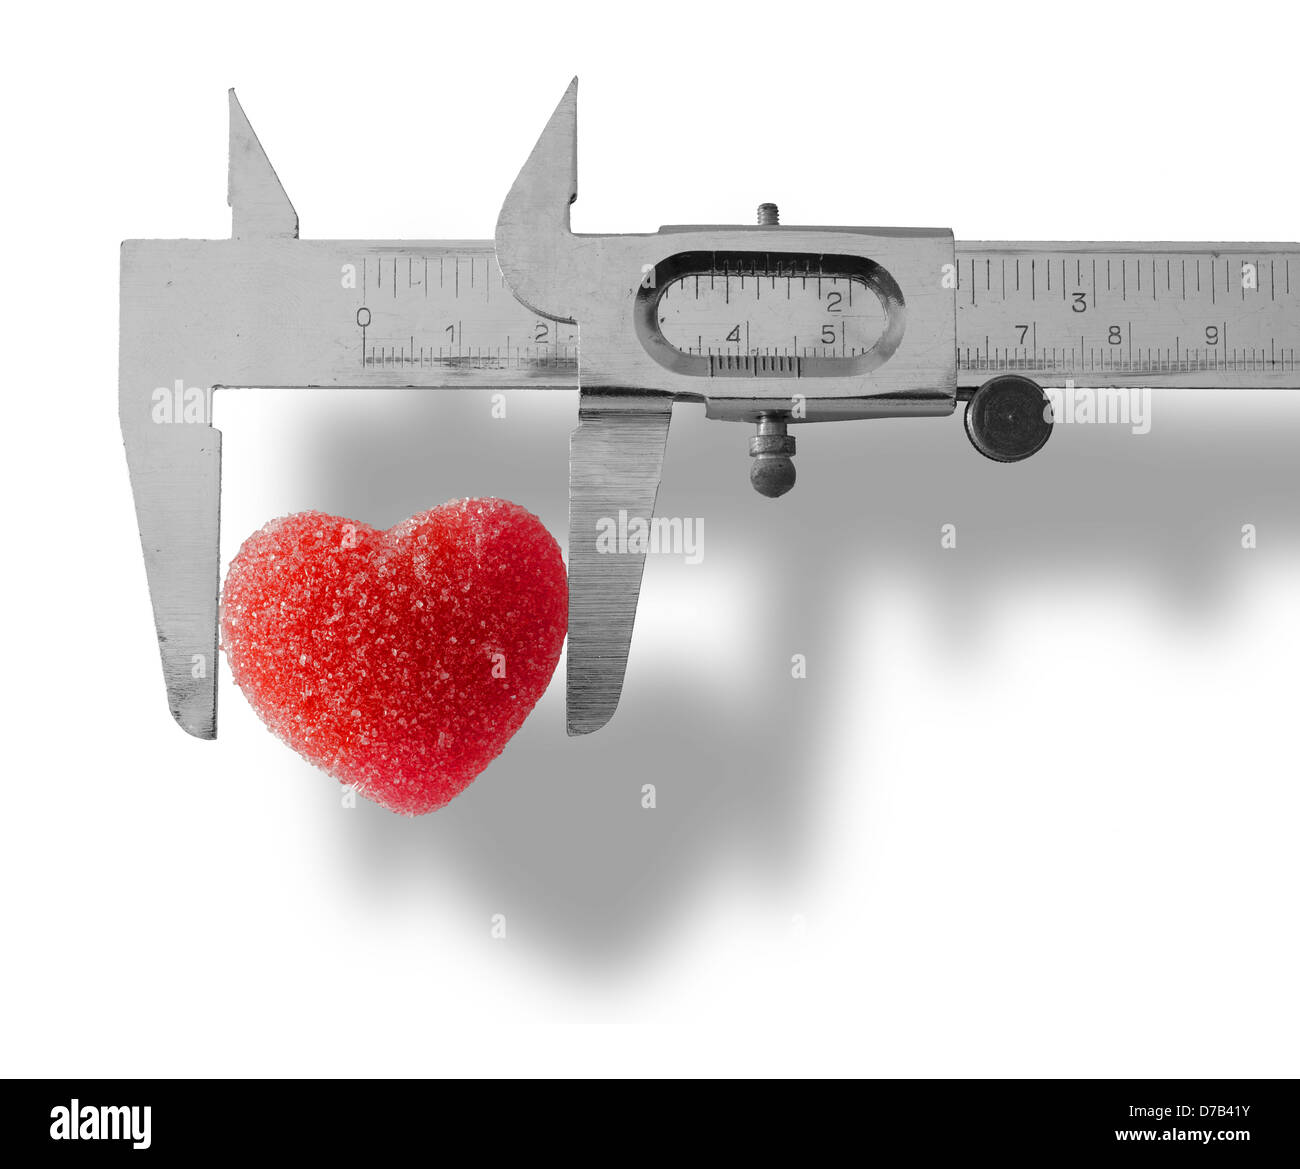 Heart measured with caliper. Isolted over white background - Stock Image